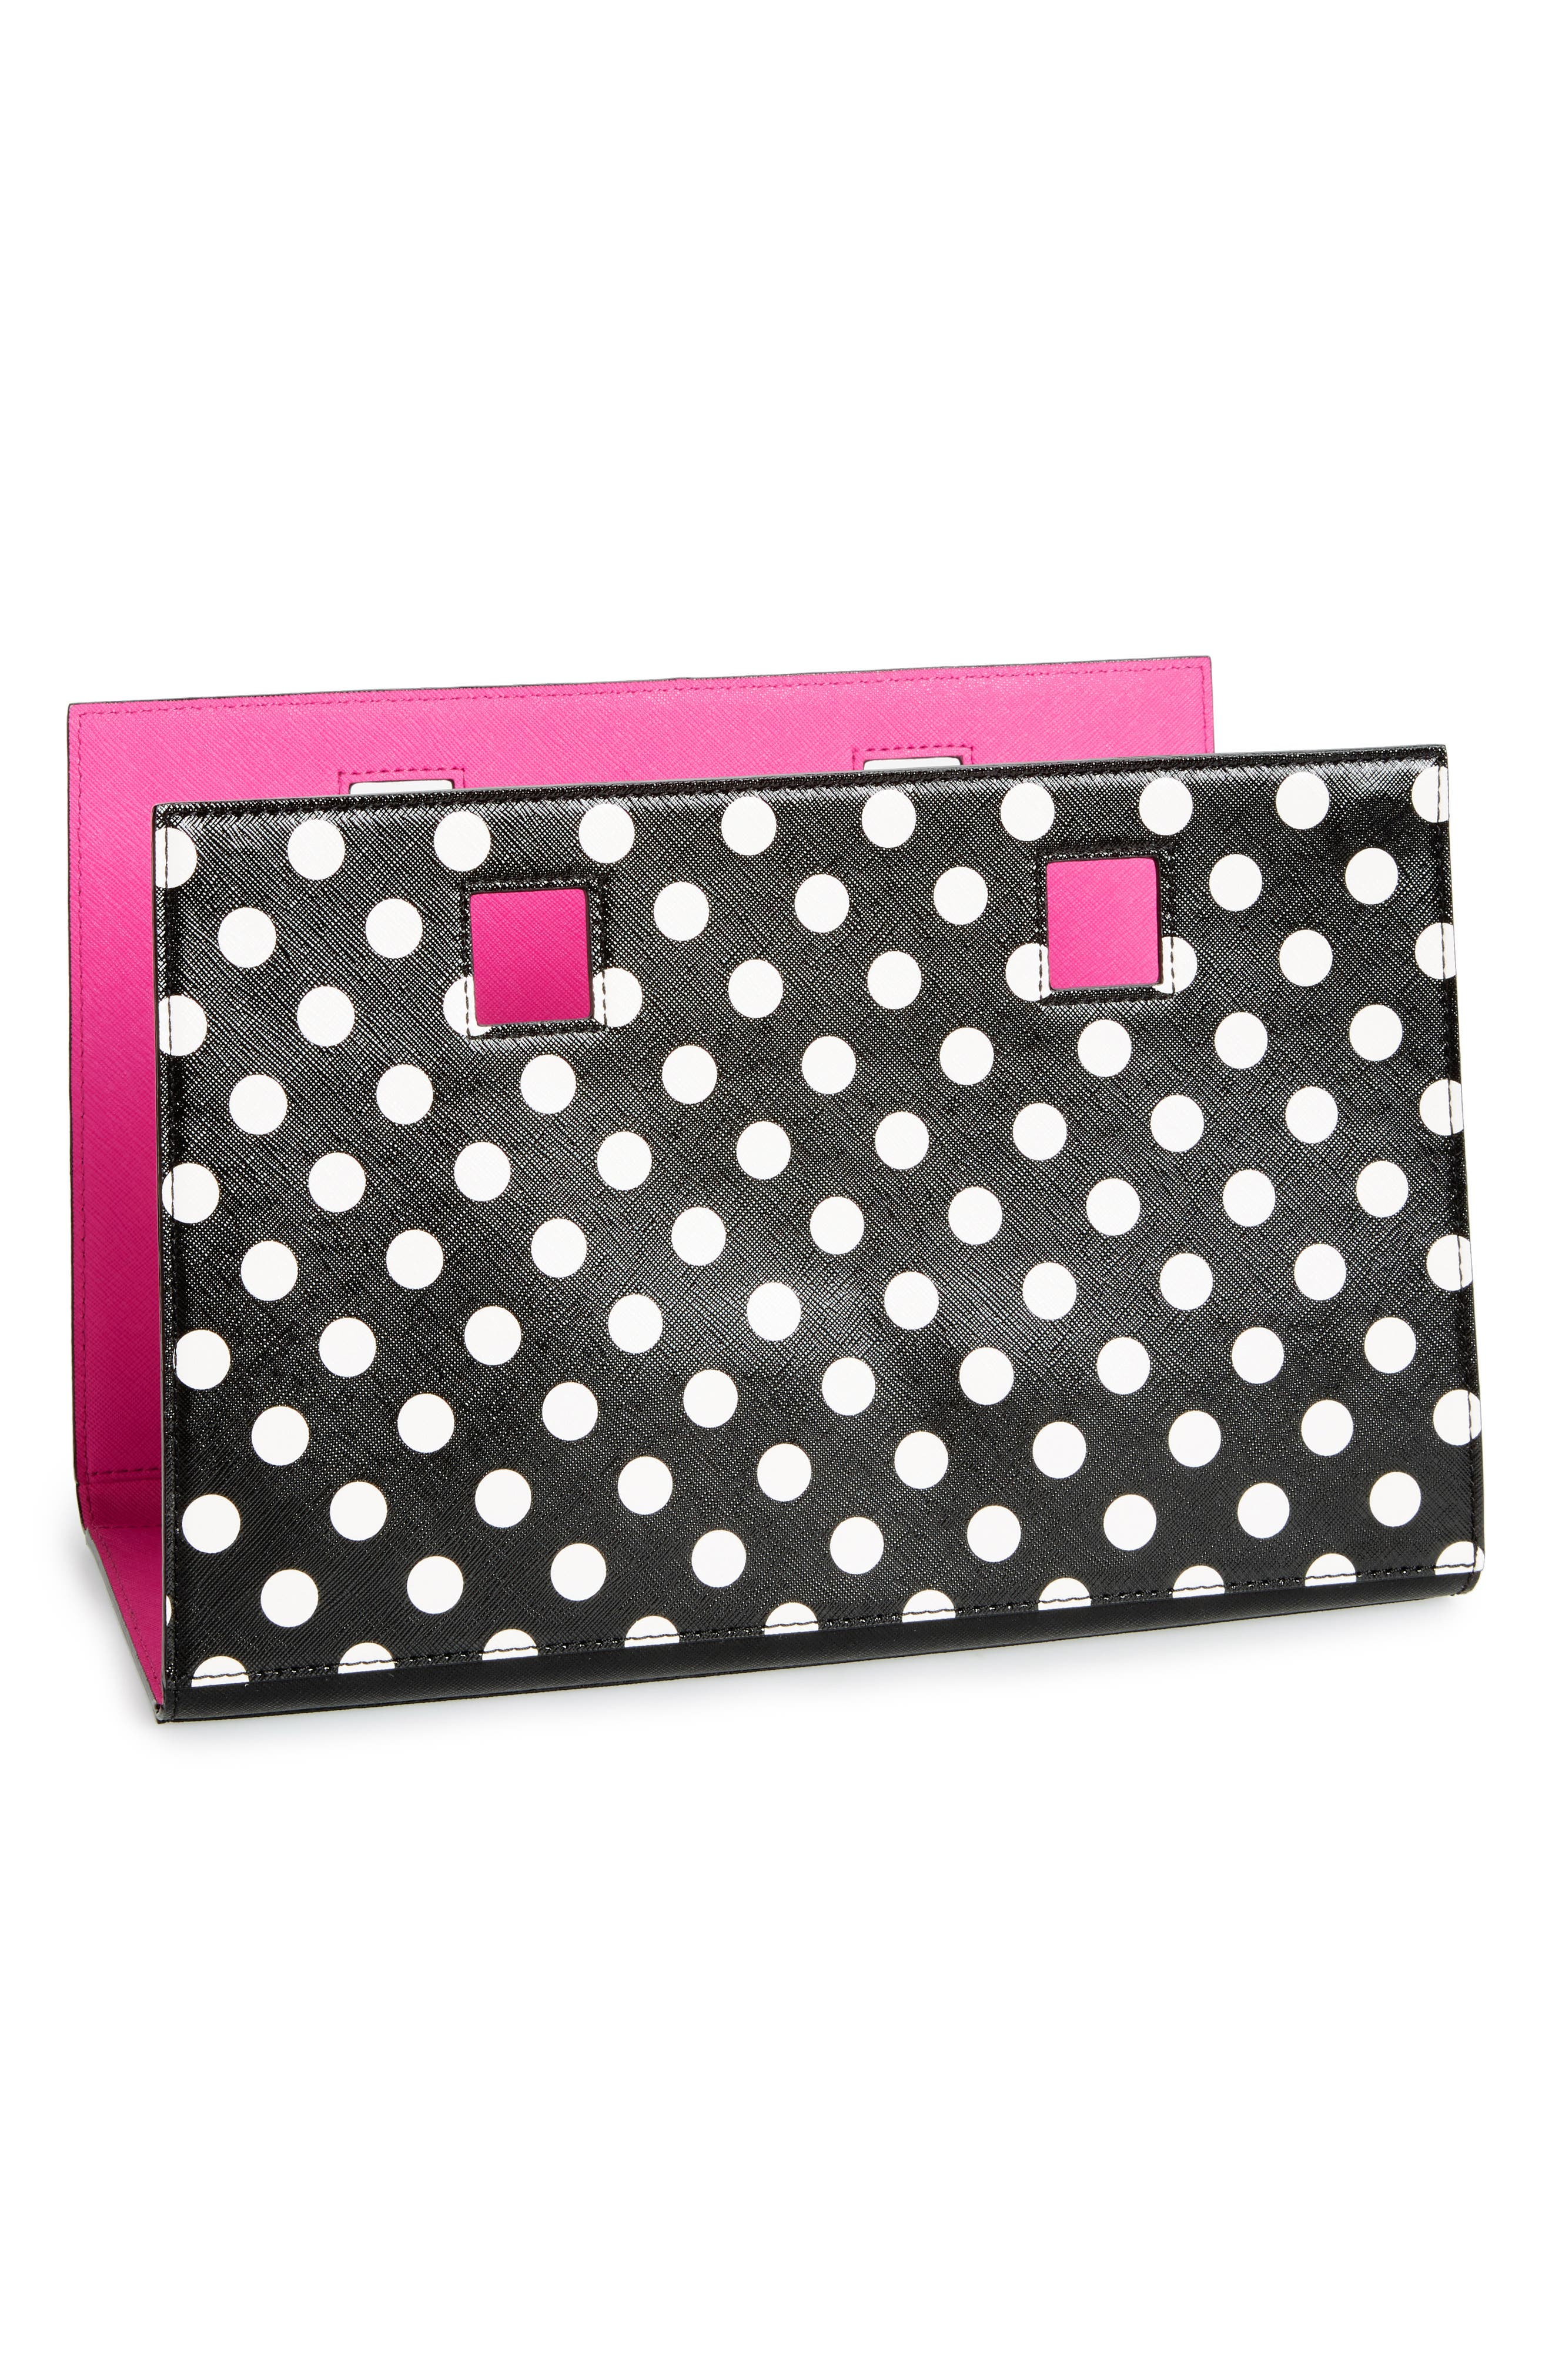 make it mine reversible polka dot/solid leather snap-on accent flap,                             Main thumbnail 1, color,                             Blk/ Vivdsn